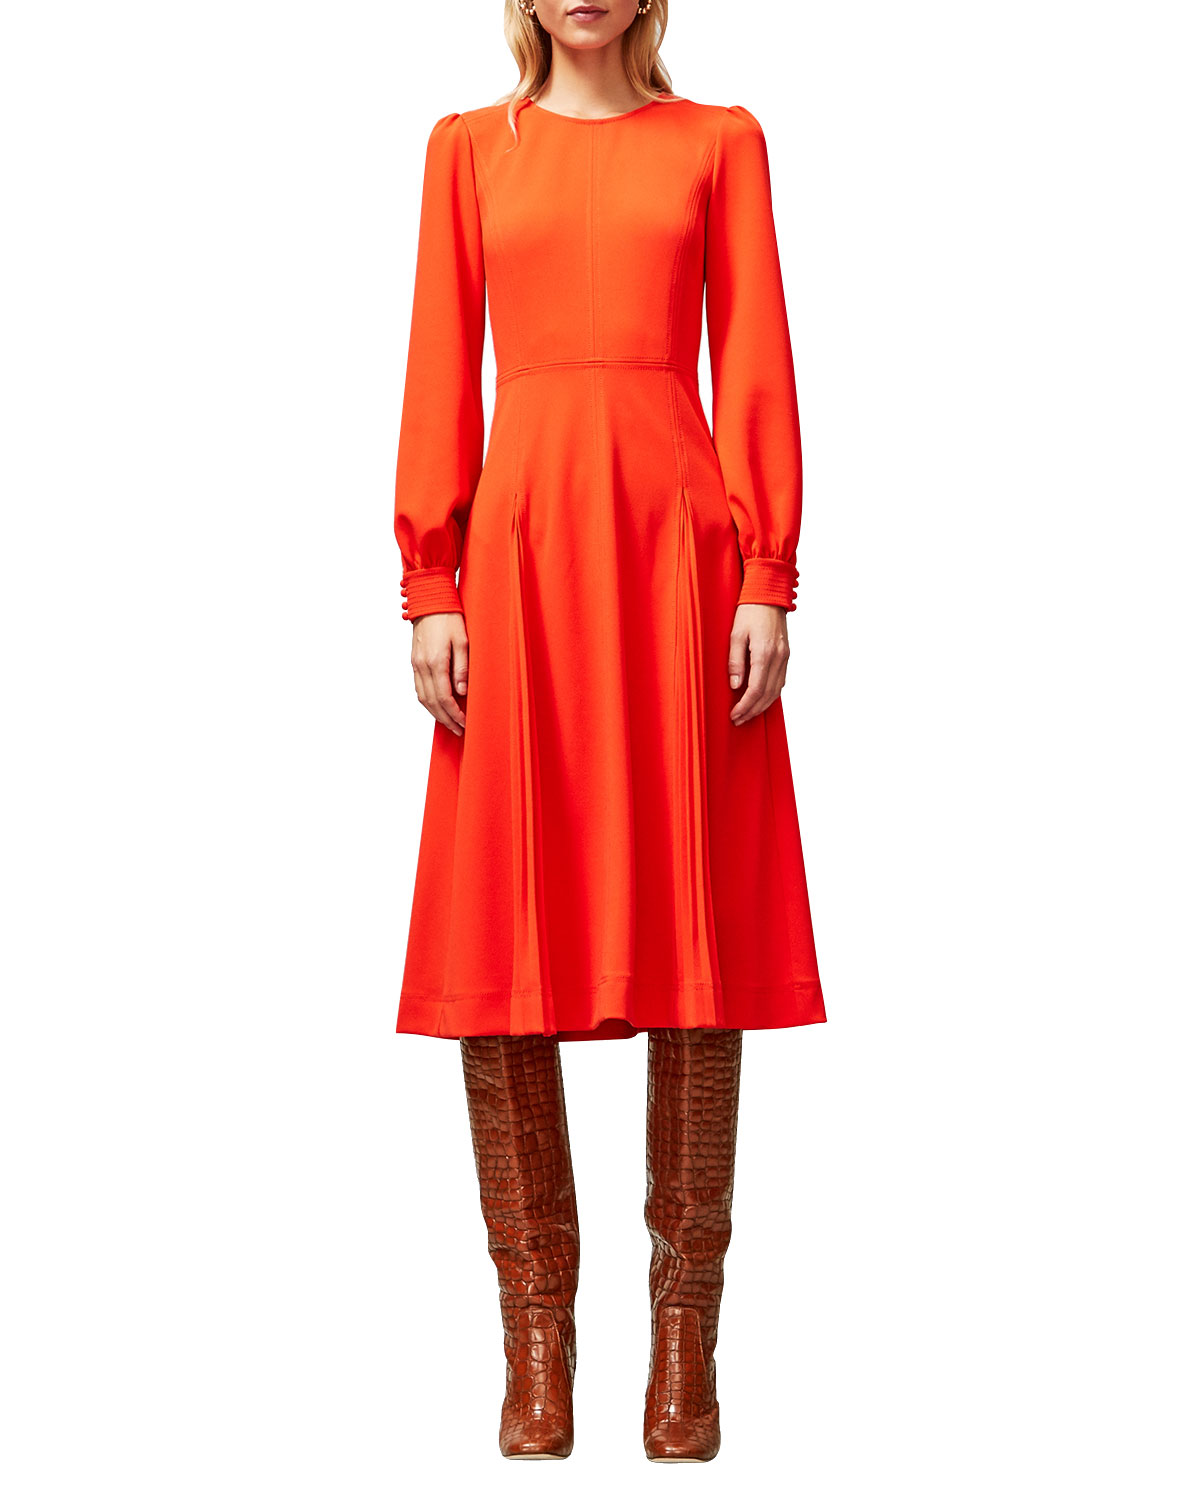 Tory Burch Dresses LONG-SLEEVE STITCHED KNIT CREPE DRESS